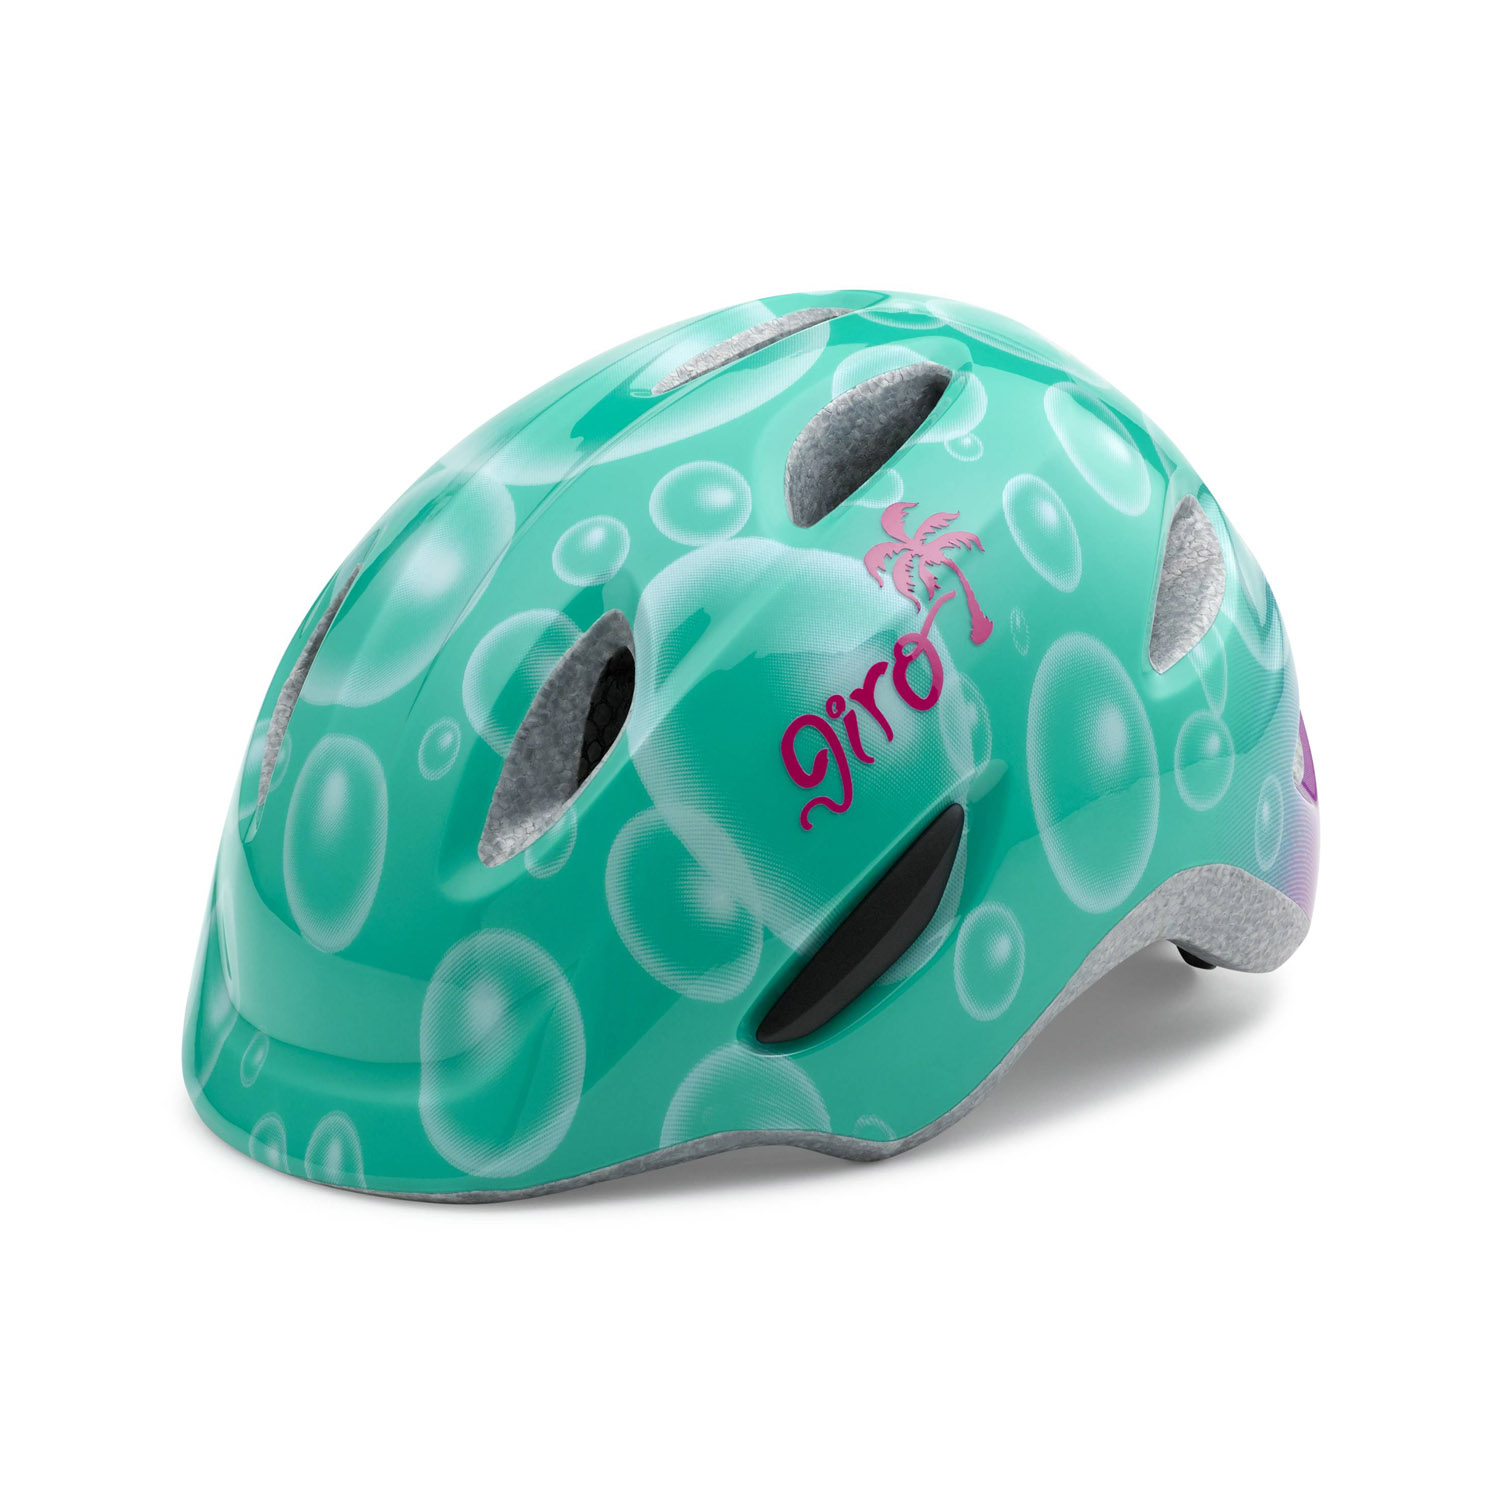 giro scamp kinder fahrradhelm turquoise bubbles gr e xs. Black Bedroom Furniture Sets. Home Design Ideas